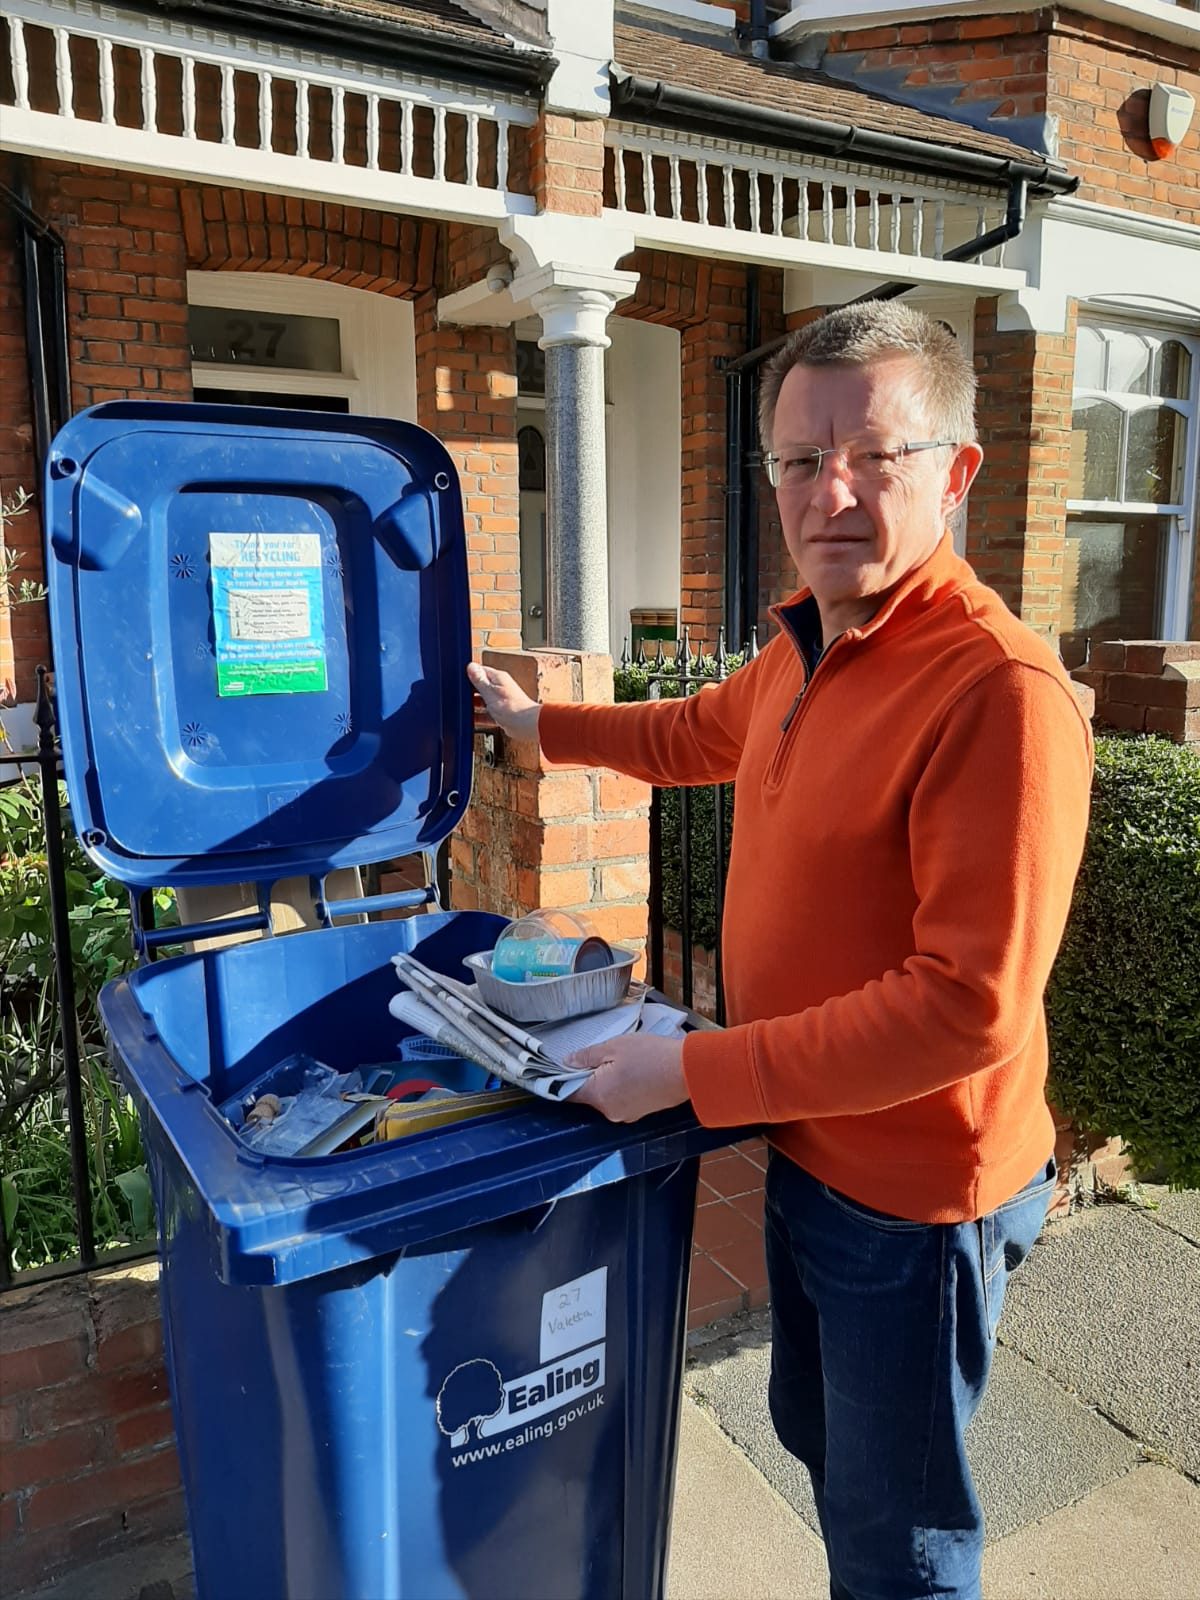 Lib Dems say Council needs to do more on failing recycling trend in Ealing